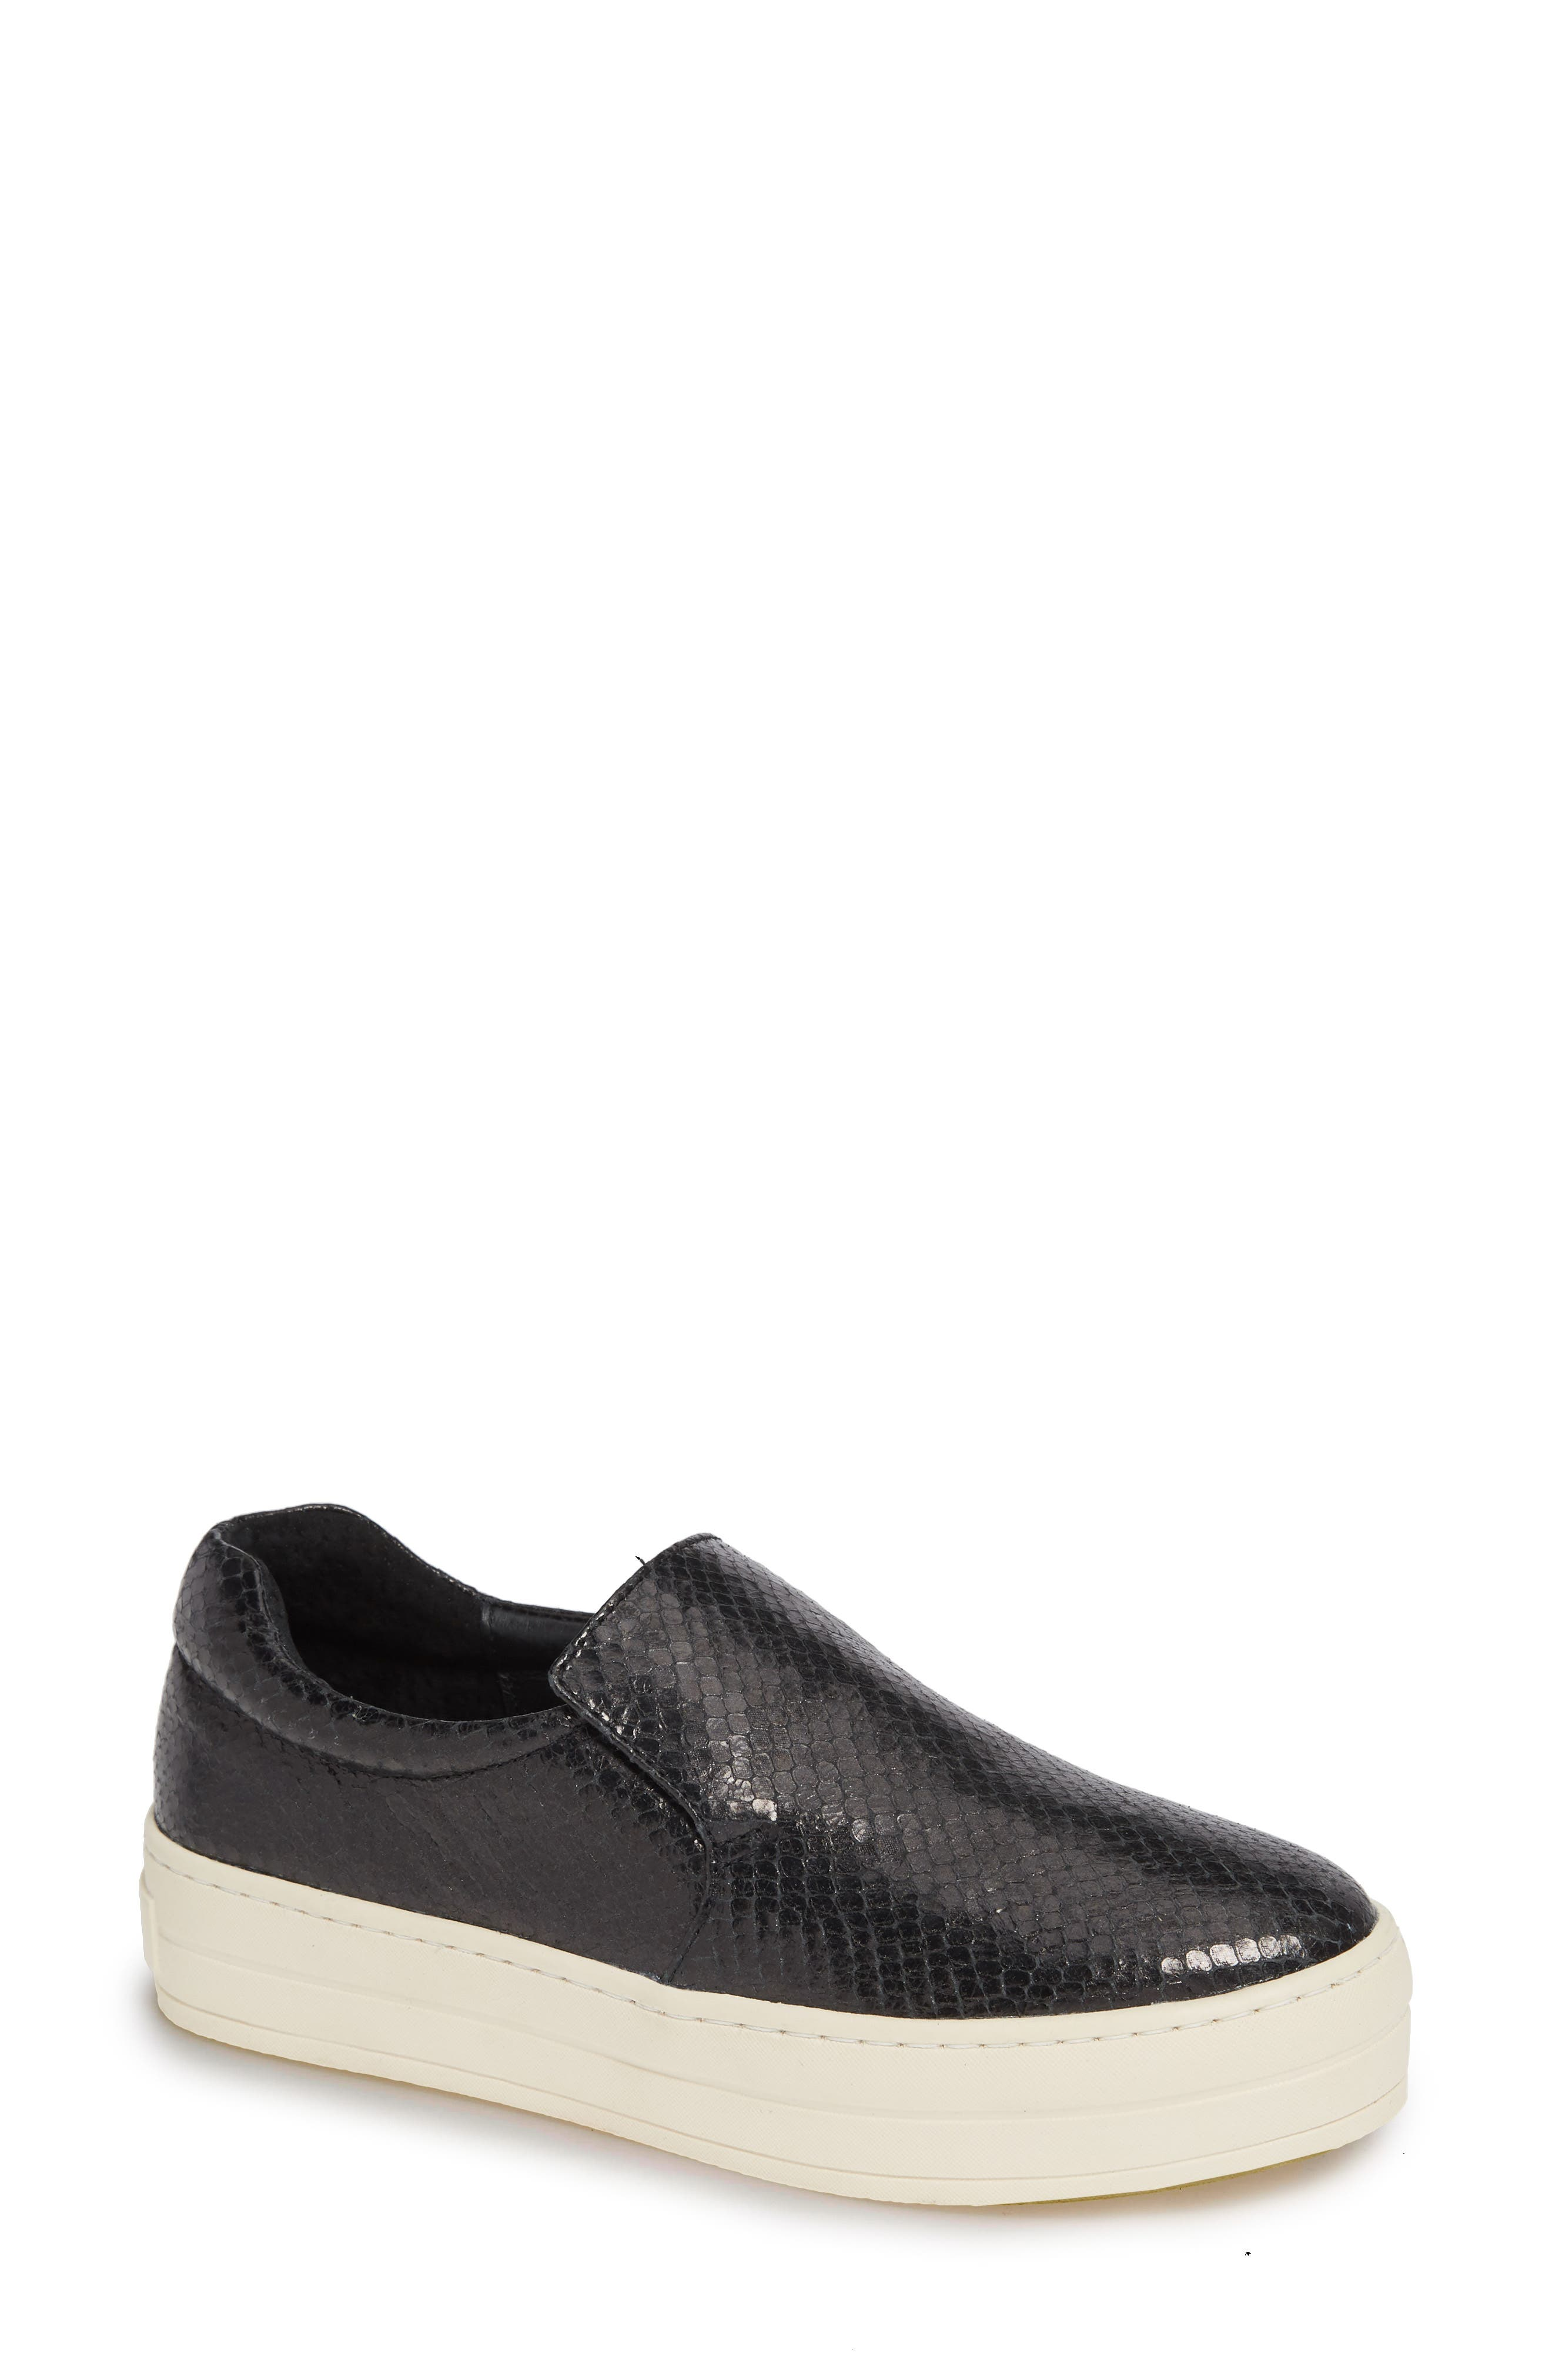 JSLIDES Harry Slip-On Sneaker in Black Embossed Leather